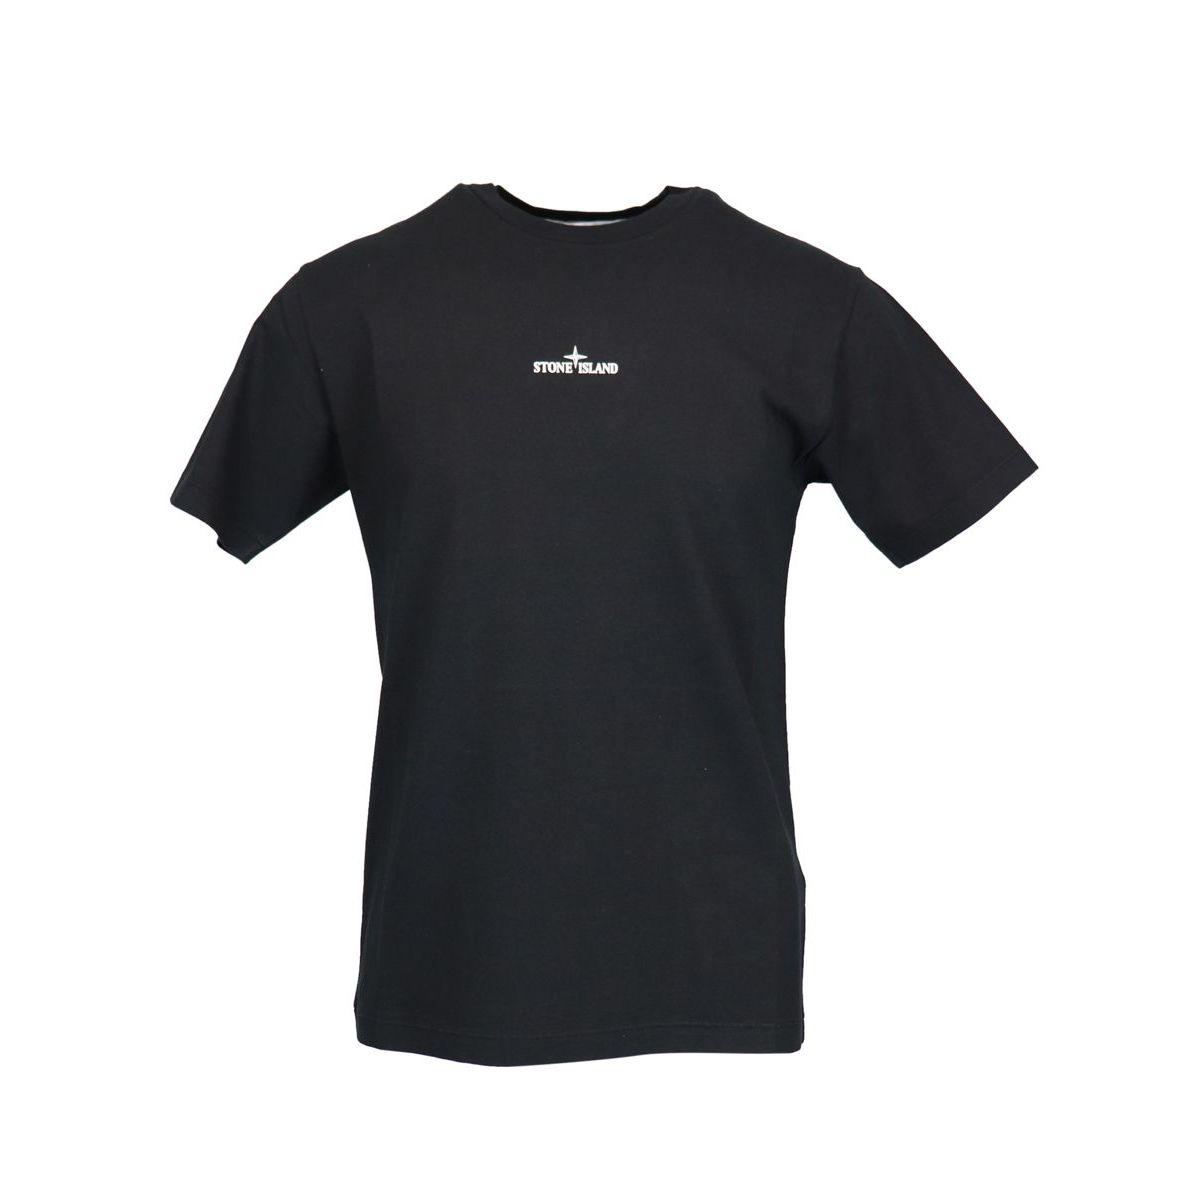 Cotton T-shirt with print on the back Black Stone Island